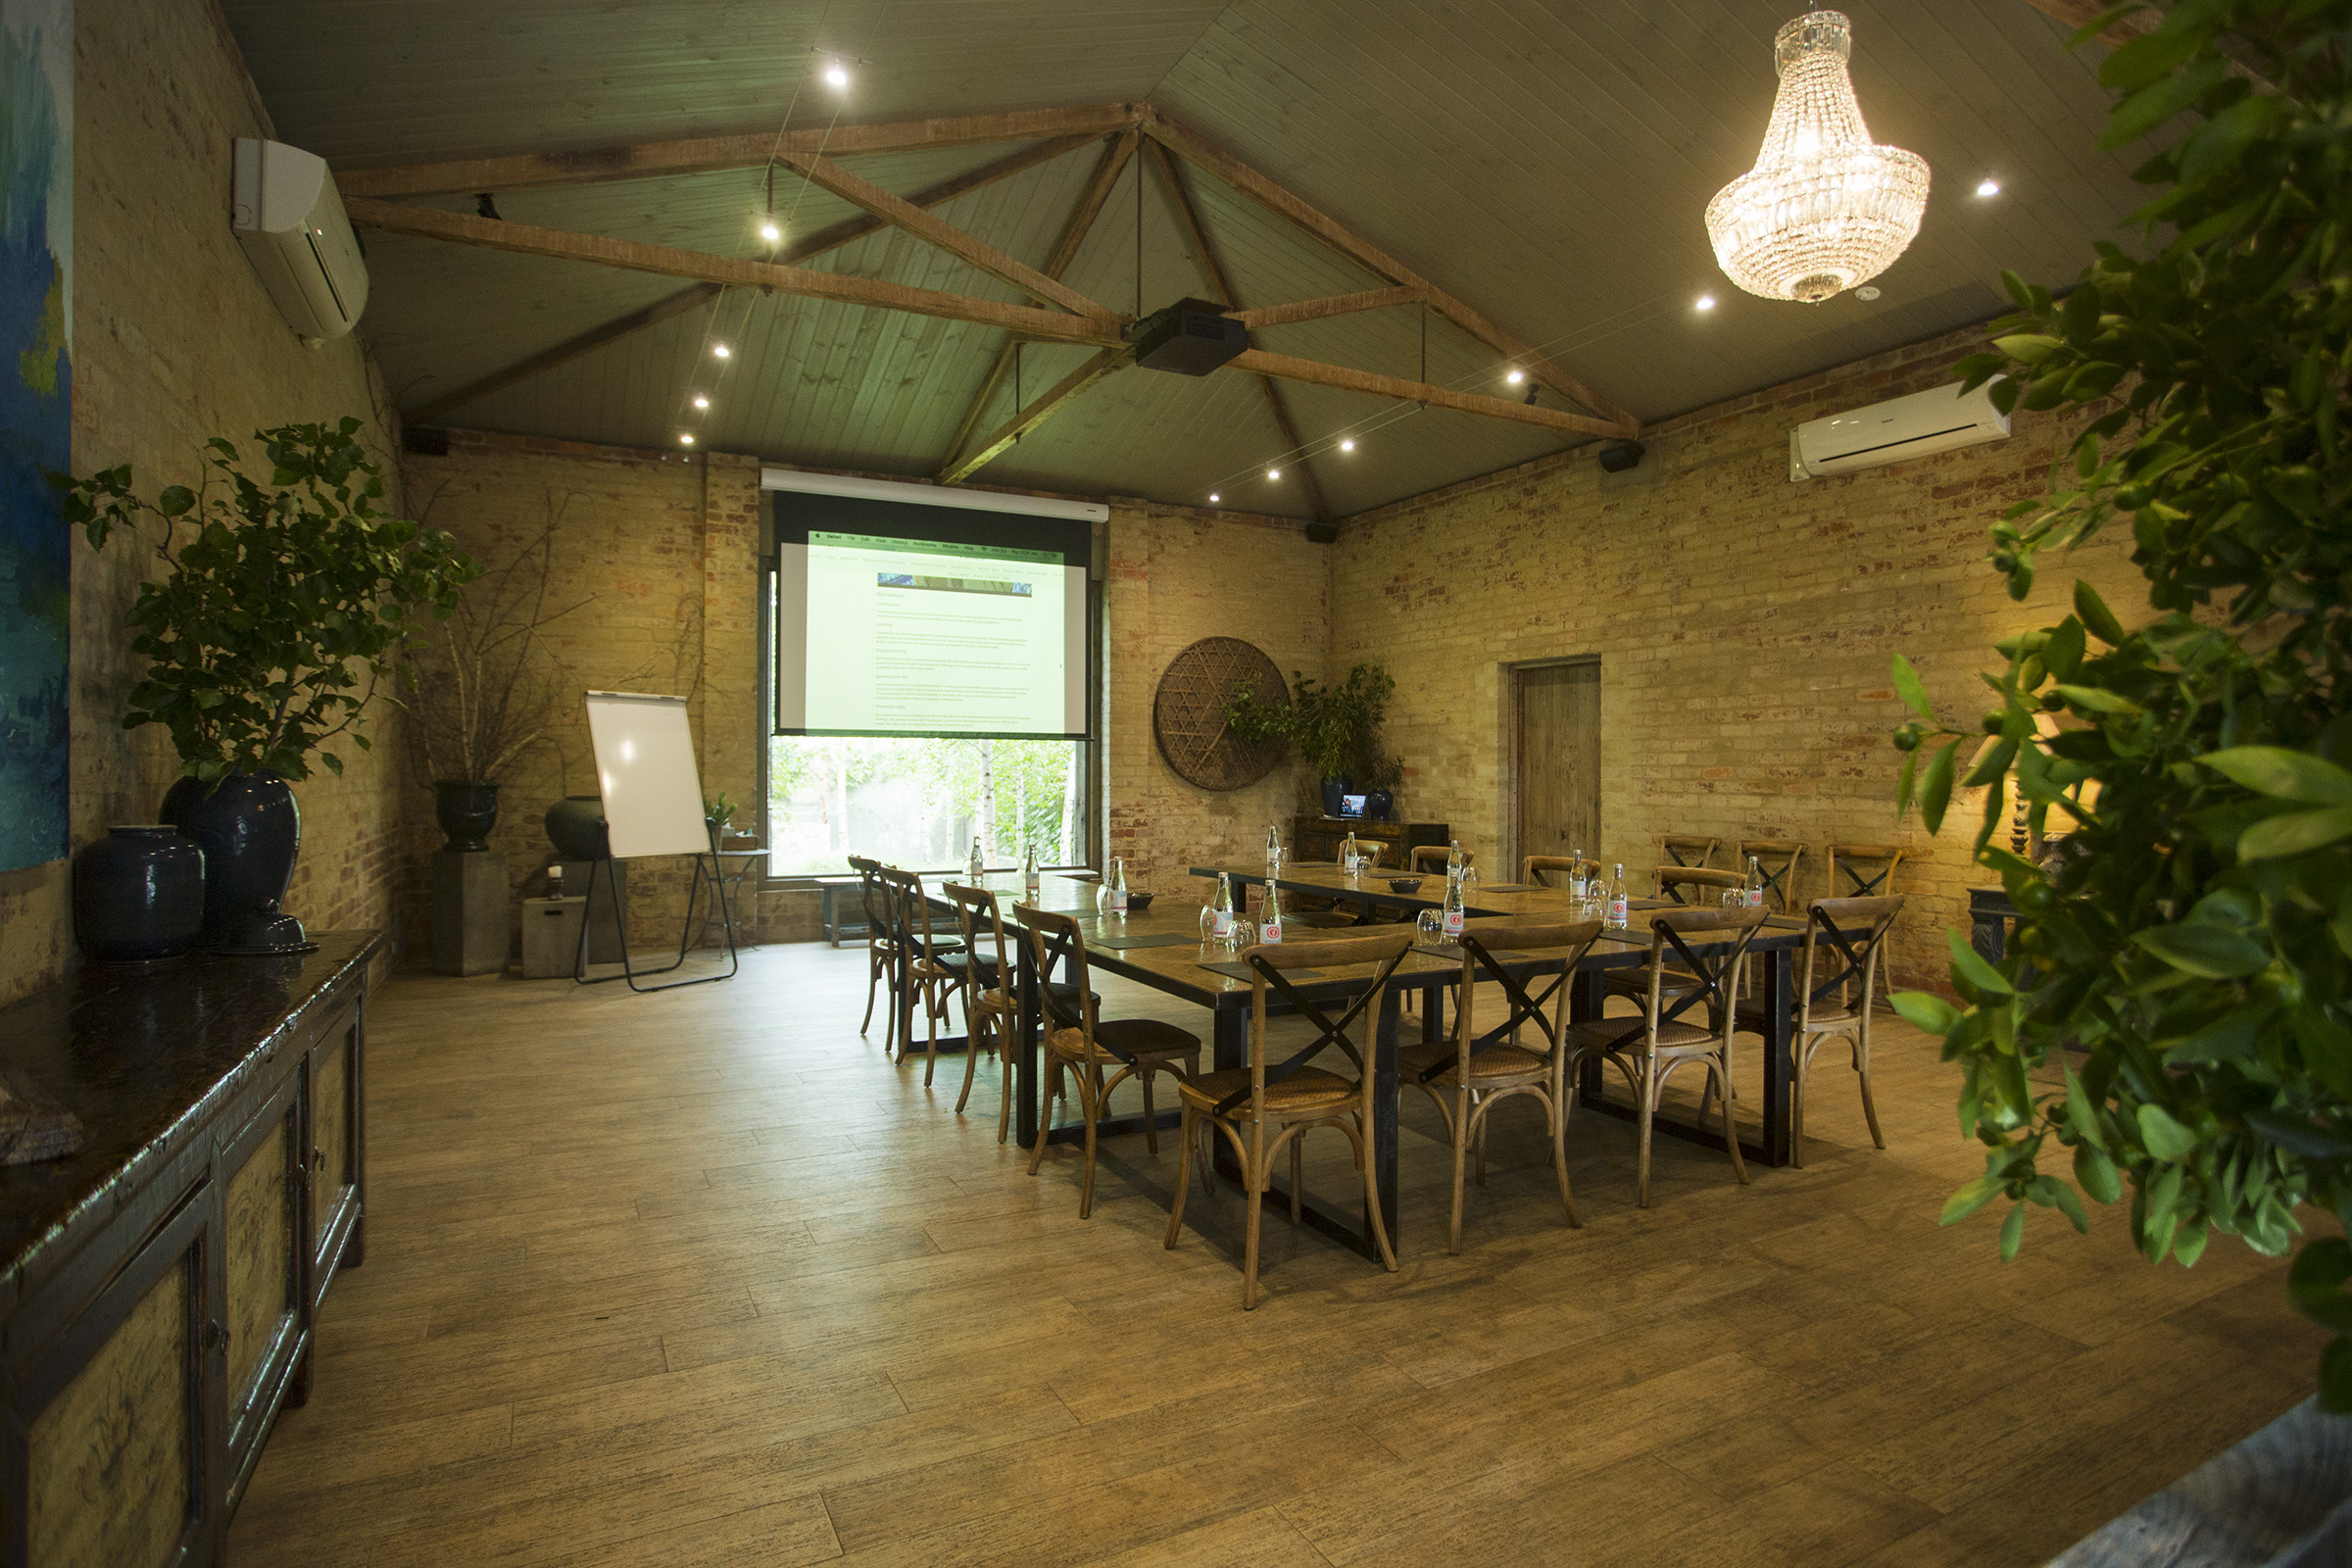 The Warehouse at Meletos - Stones of the Yarra Valley - Corporate Events